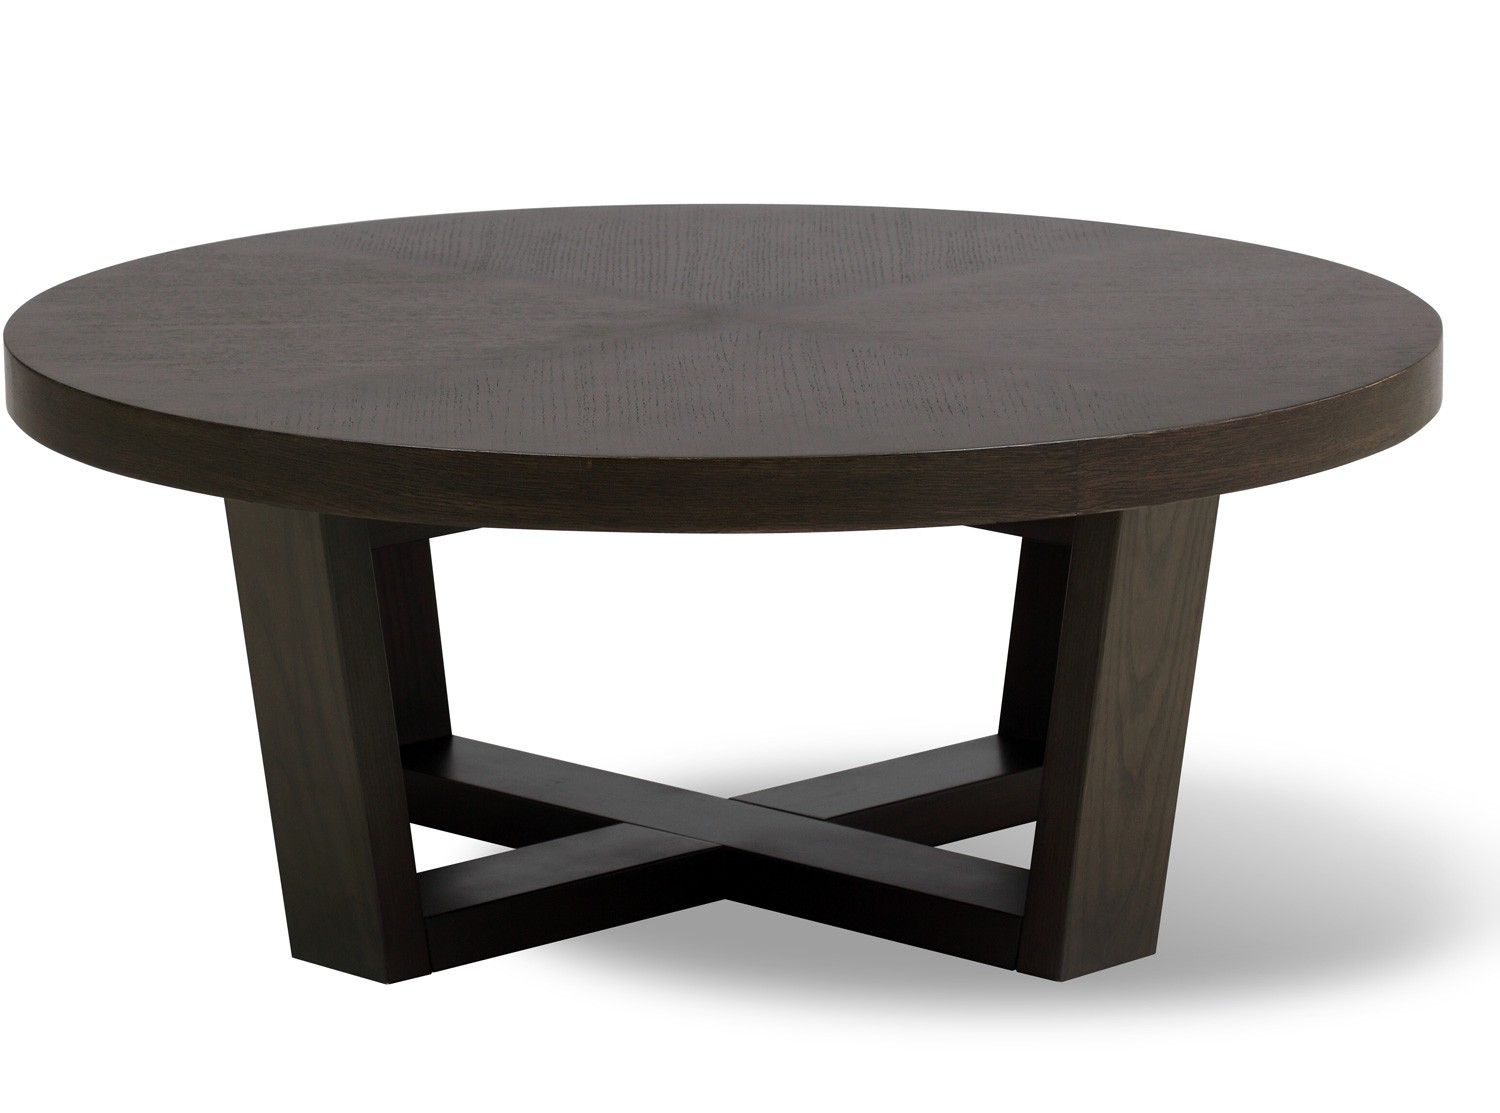 Tamma round coffee table 100 cm What to put on a round coffee table